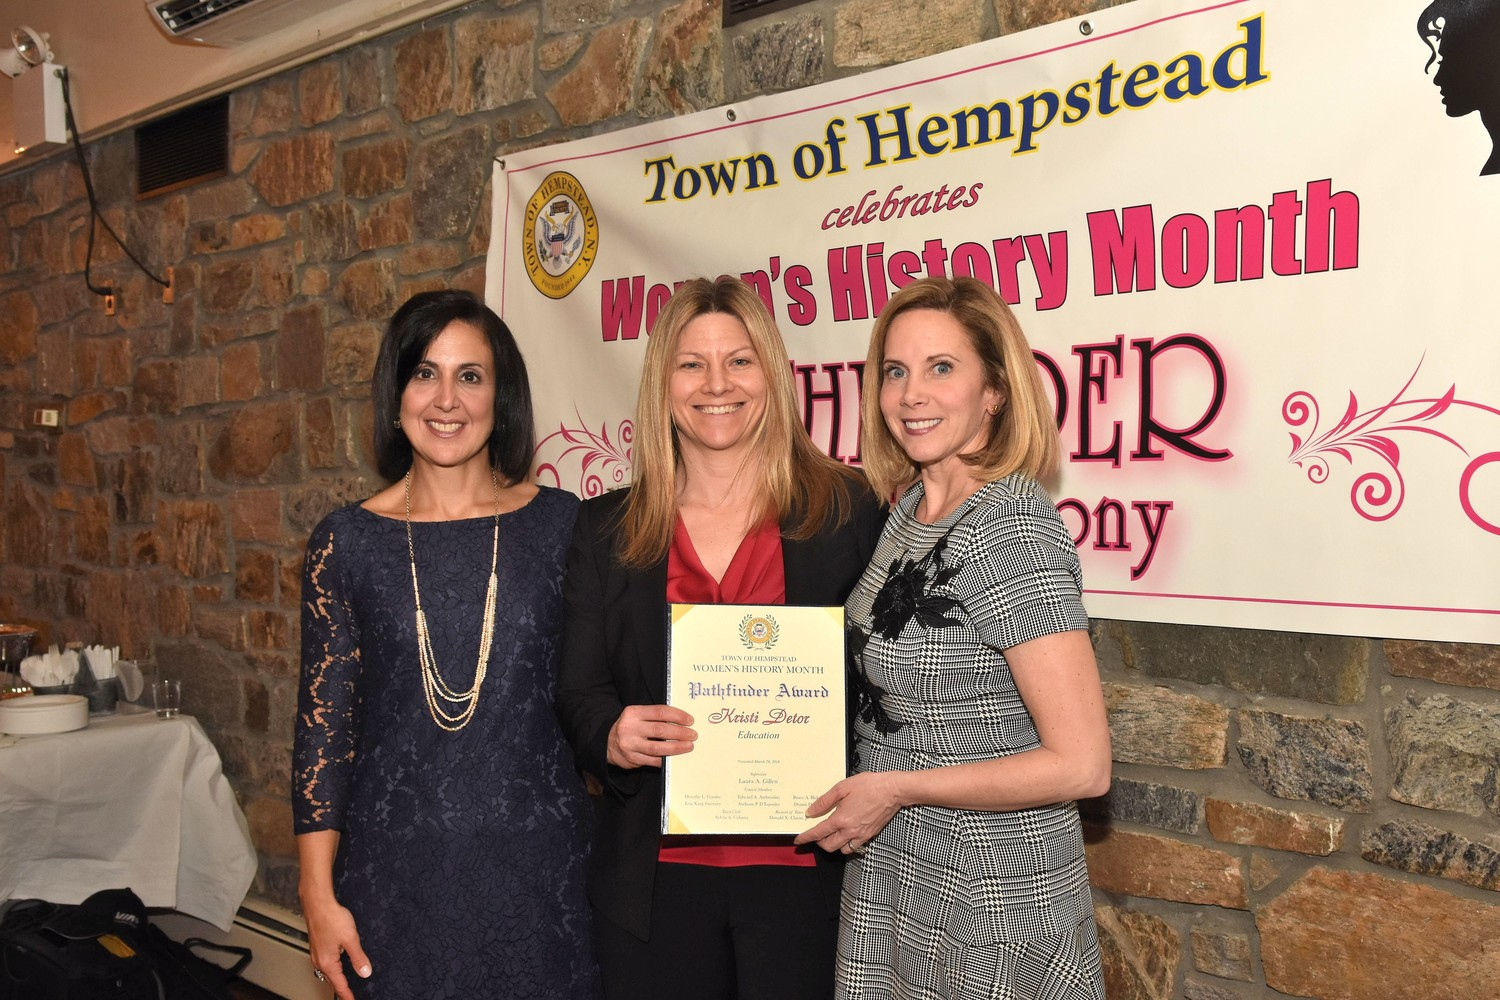 Town of Hempstead Supervisor Laura Gillen and Clerk Sylvia Cabana presented the 2018 Pathfinder Awards on March 29.